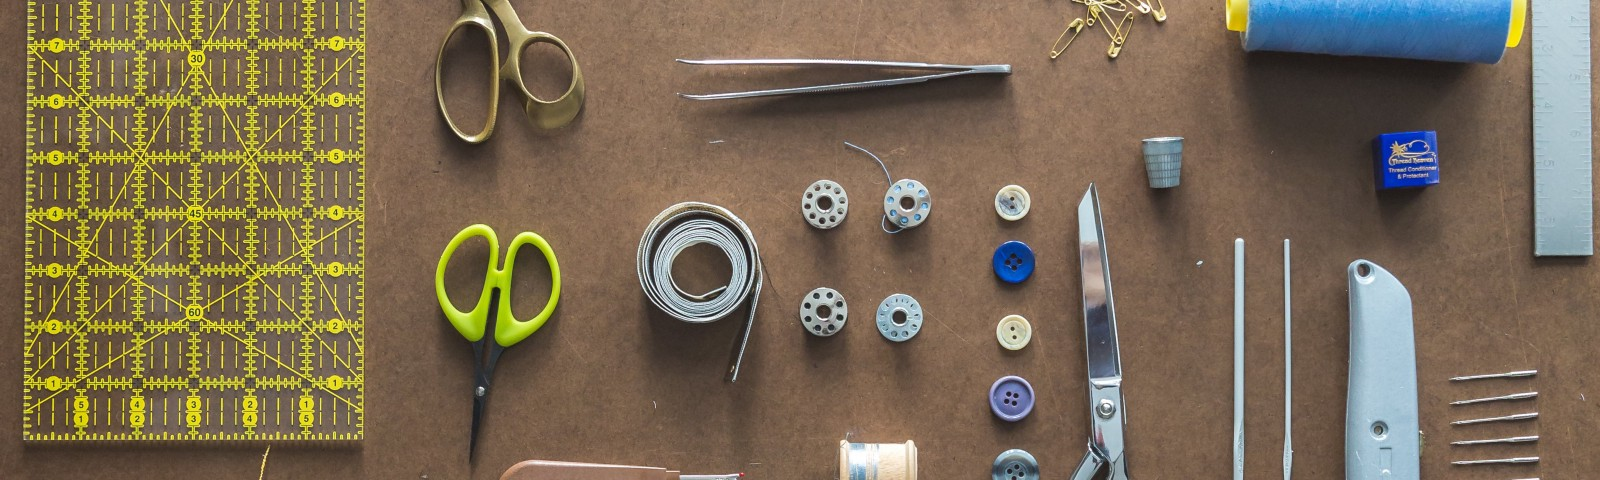 Sewing tools laid out on a table.